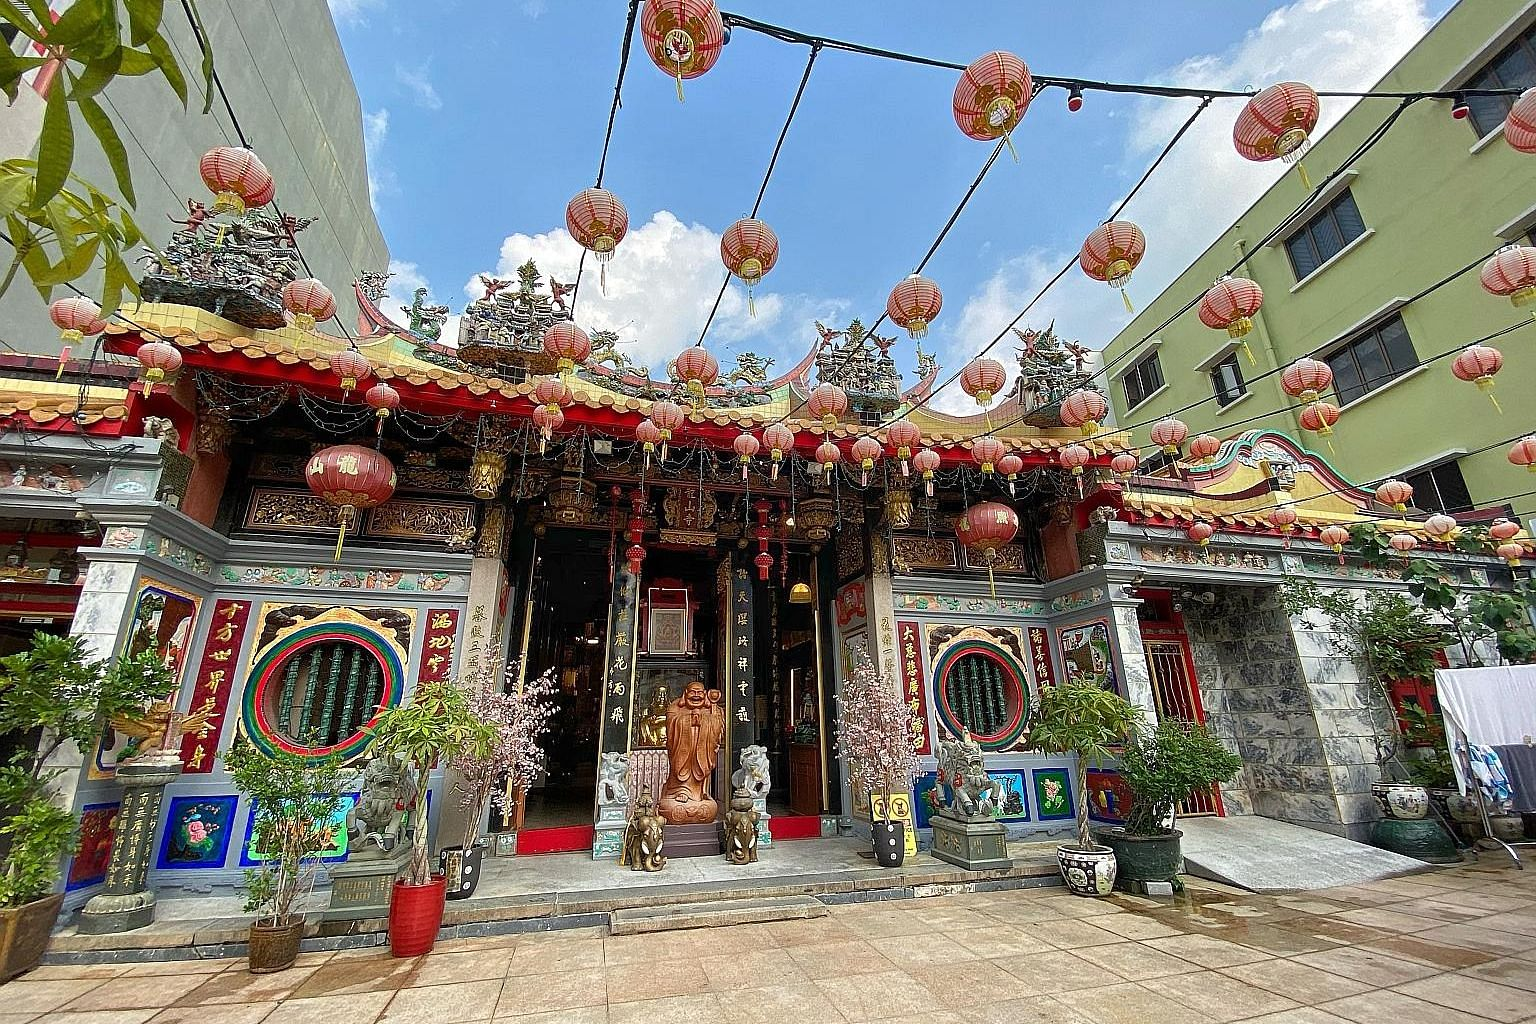 The Leong San See temple has lodged a police report against a Facebook user who posted photos and descriptions allegedly of the temple's abbot engaging in sex acts with men.